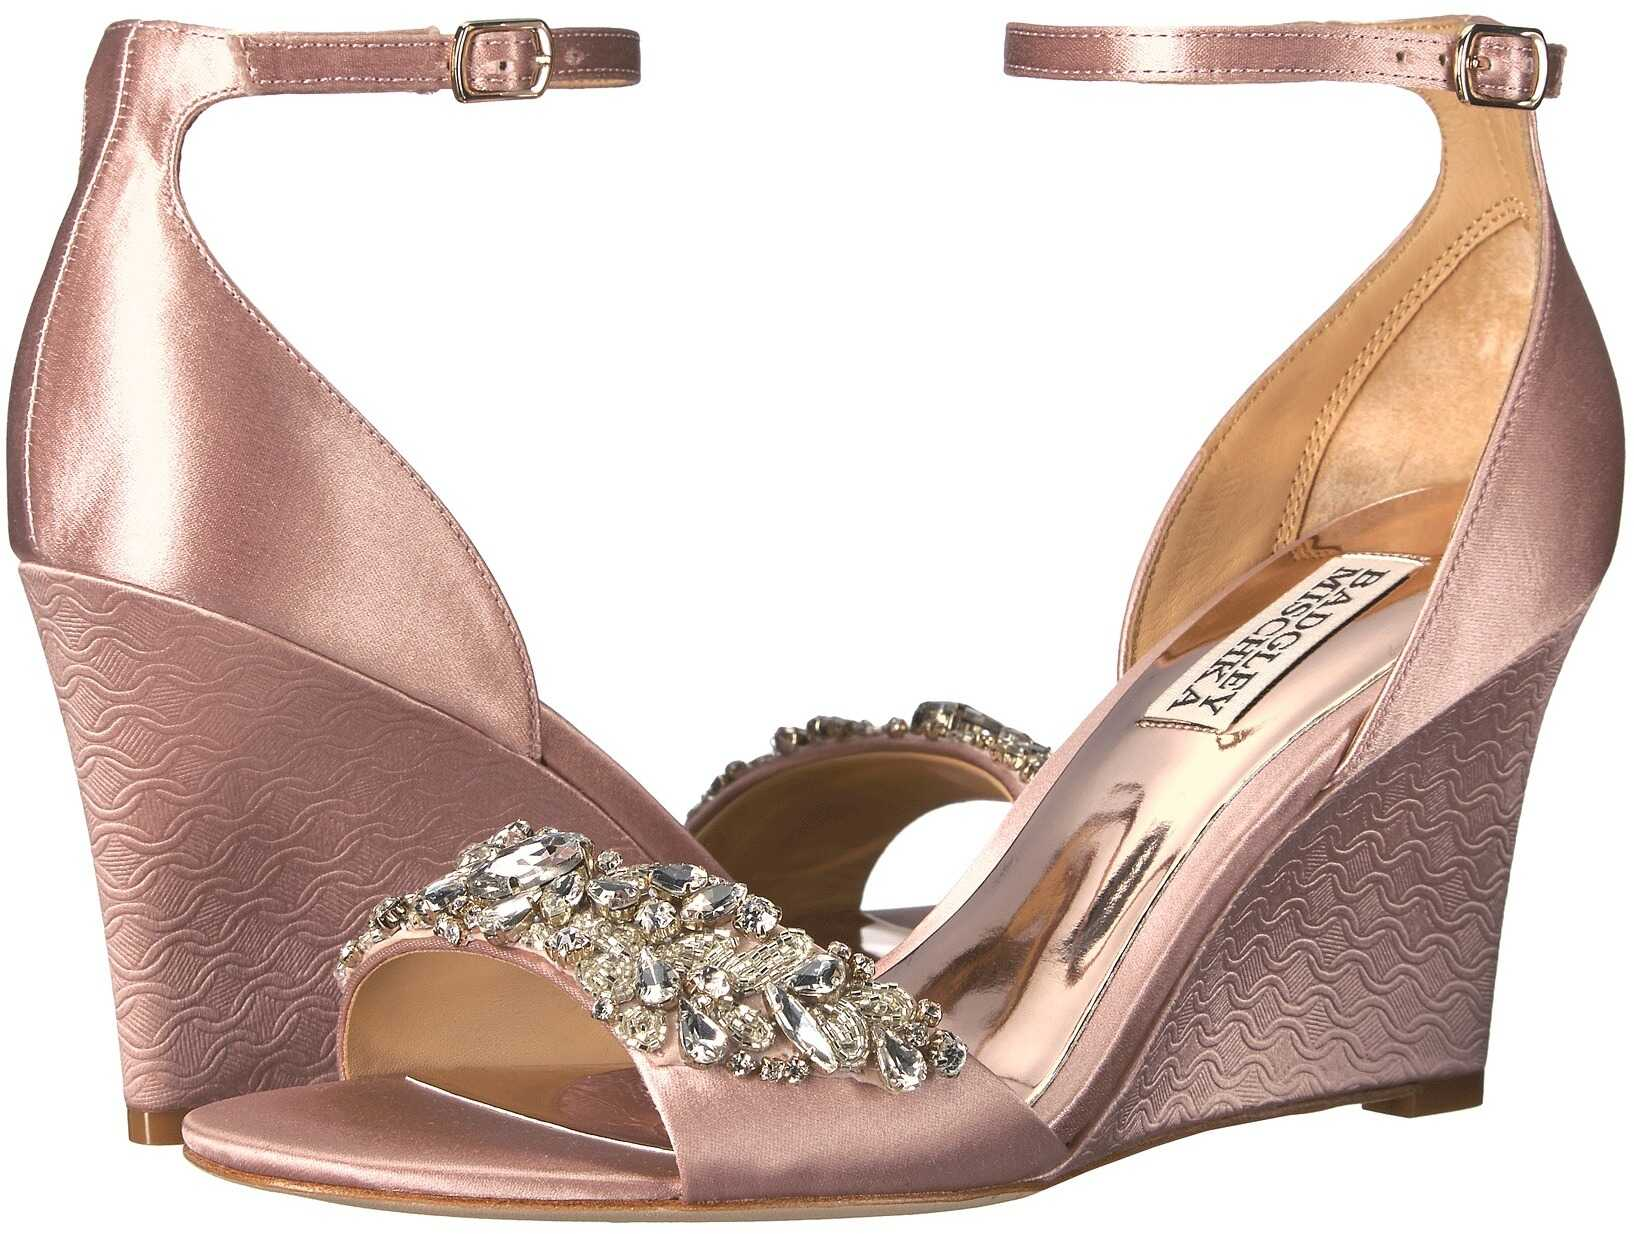 Badgley Mischka Tyra Blush Satin